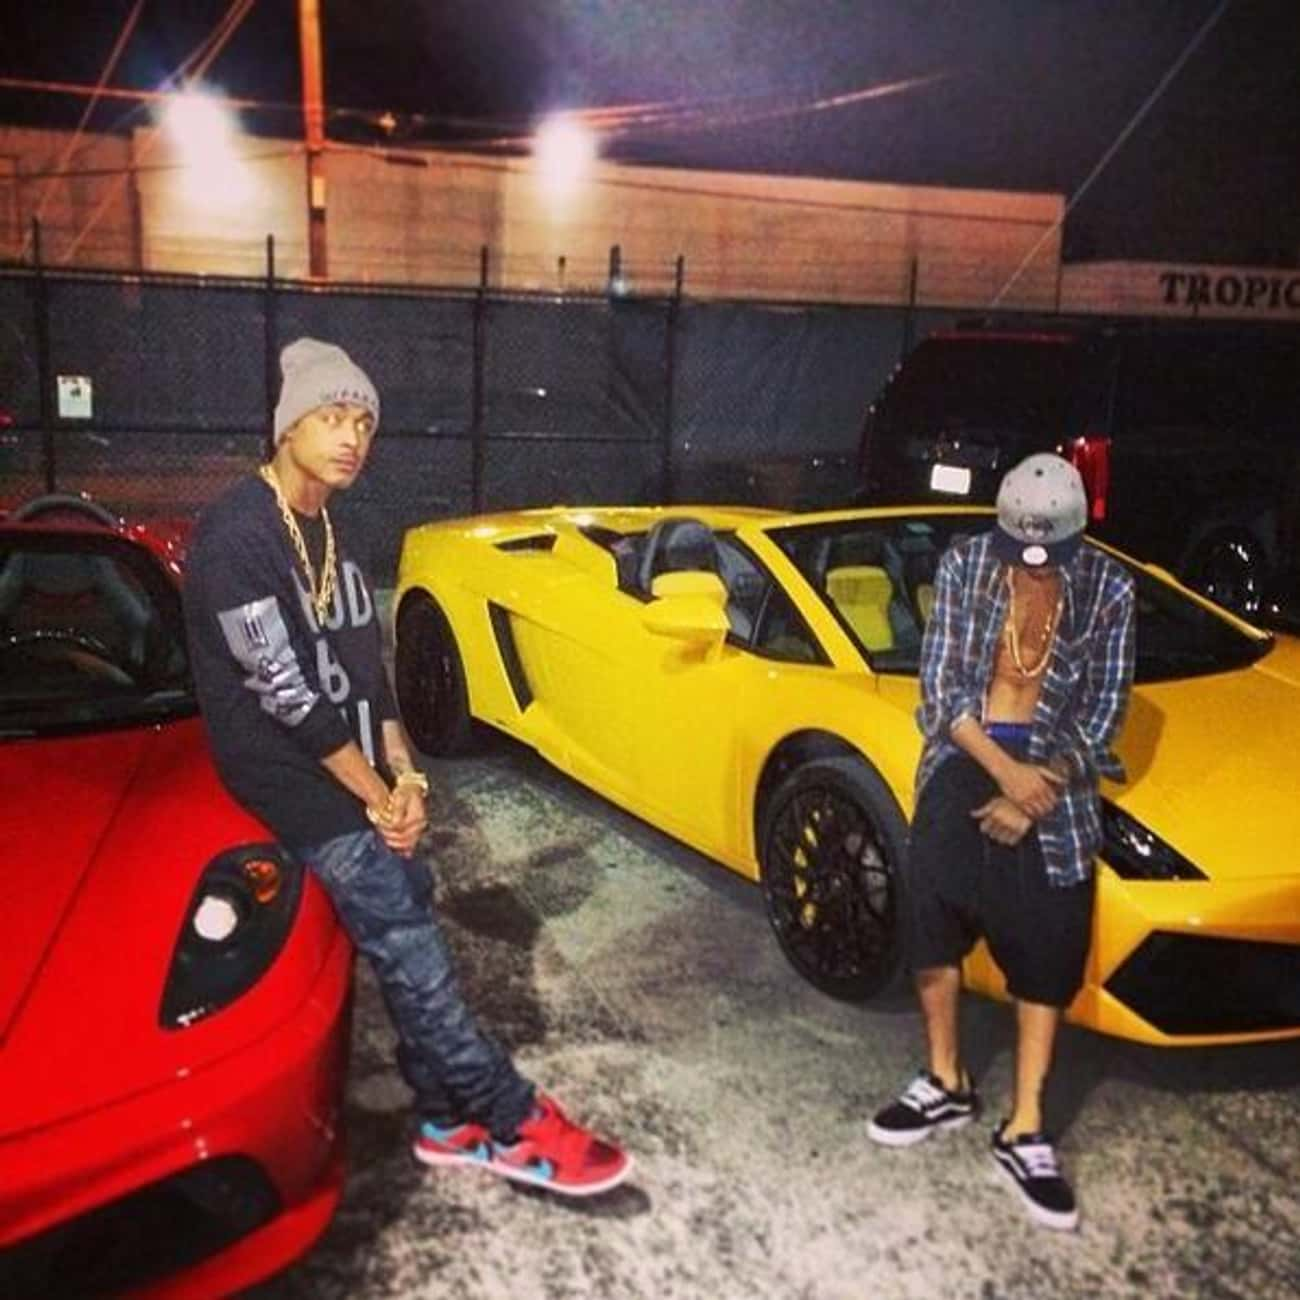 Lamborghini Gallardo is listed (or ranked) 2 on the list Cars Owned By Justin Bieber That He's Probably Only Driven Once